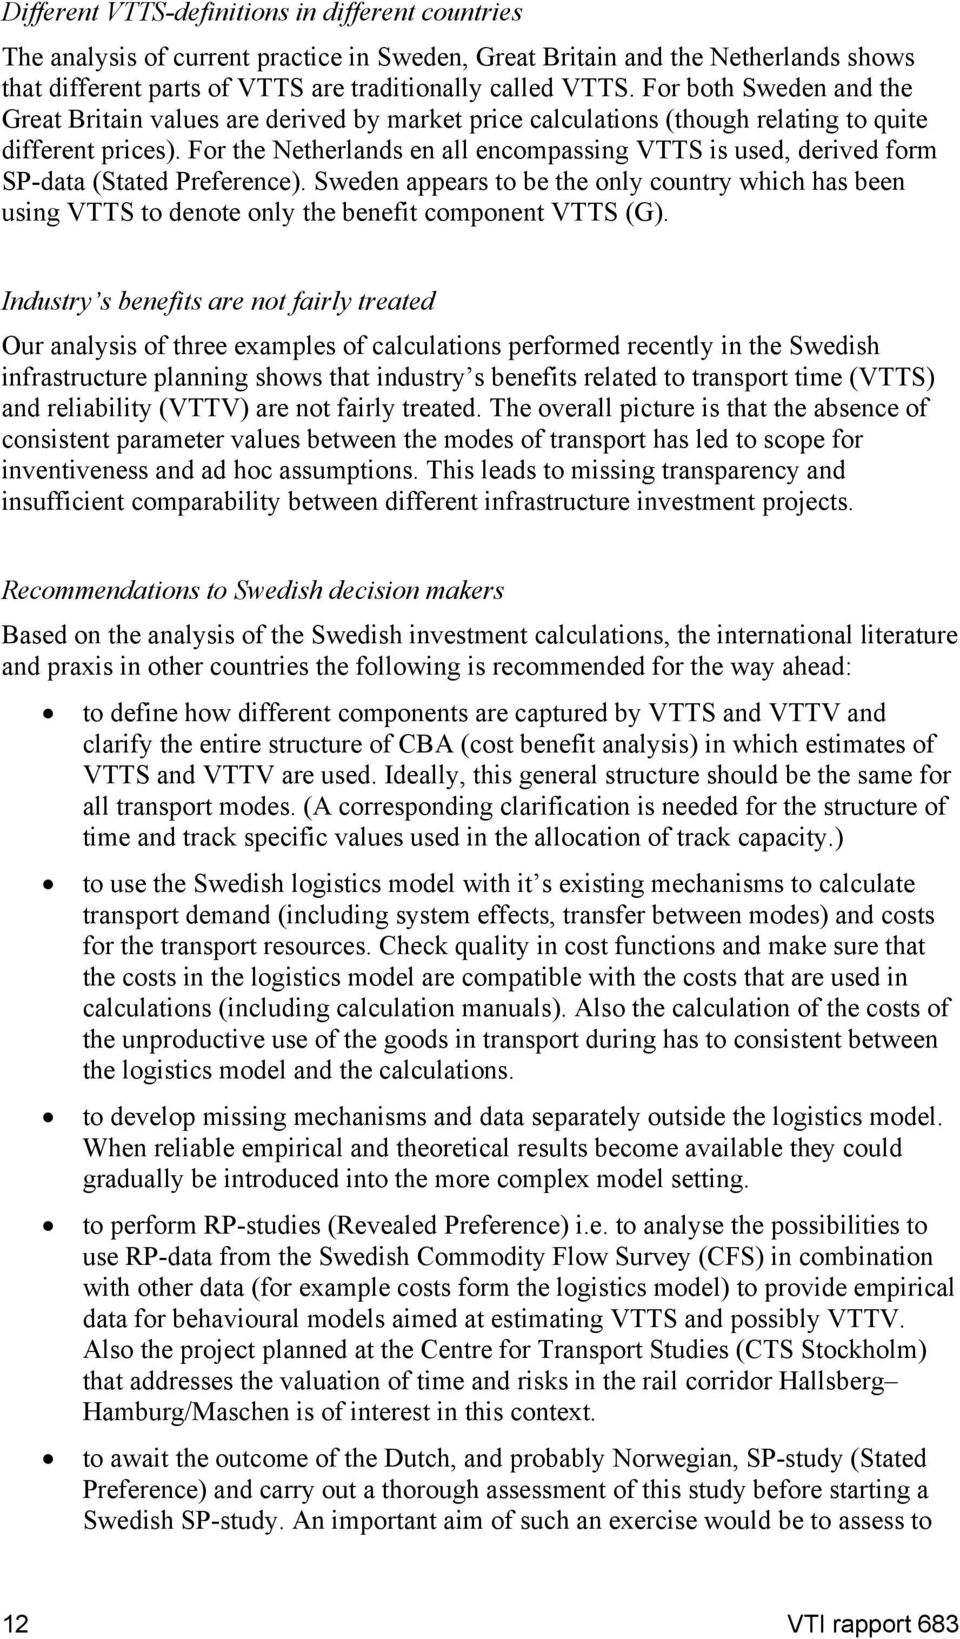 For the Netherlands en all encompassing VTTS is used, derived form SP-data (Stated Preference).